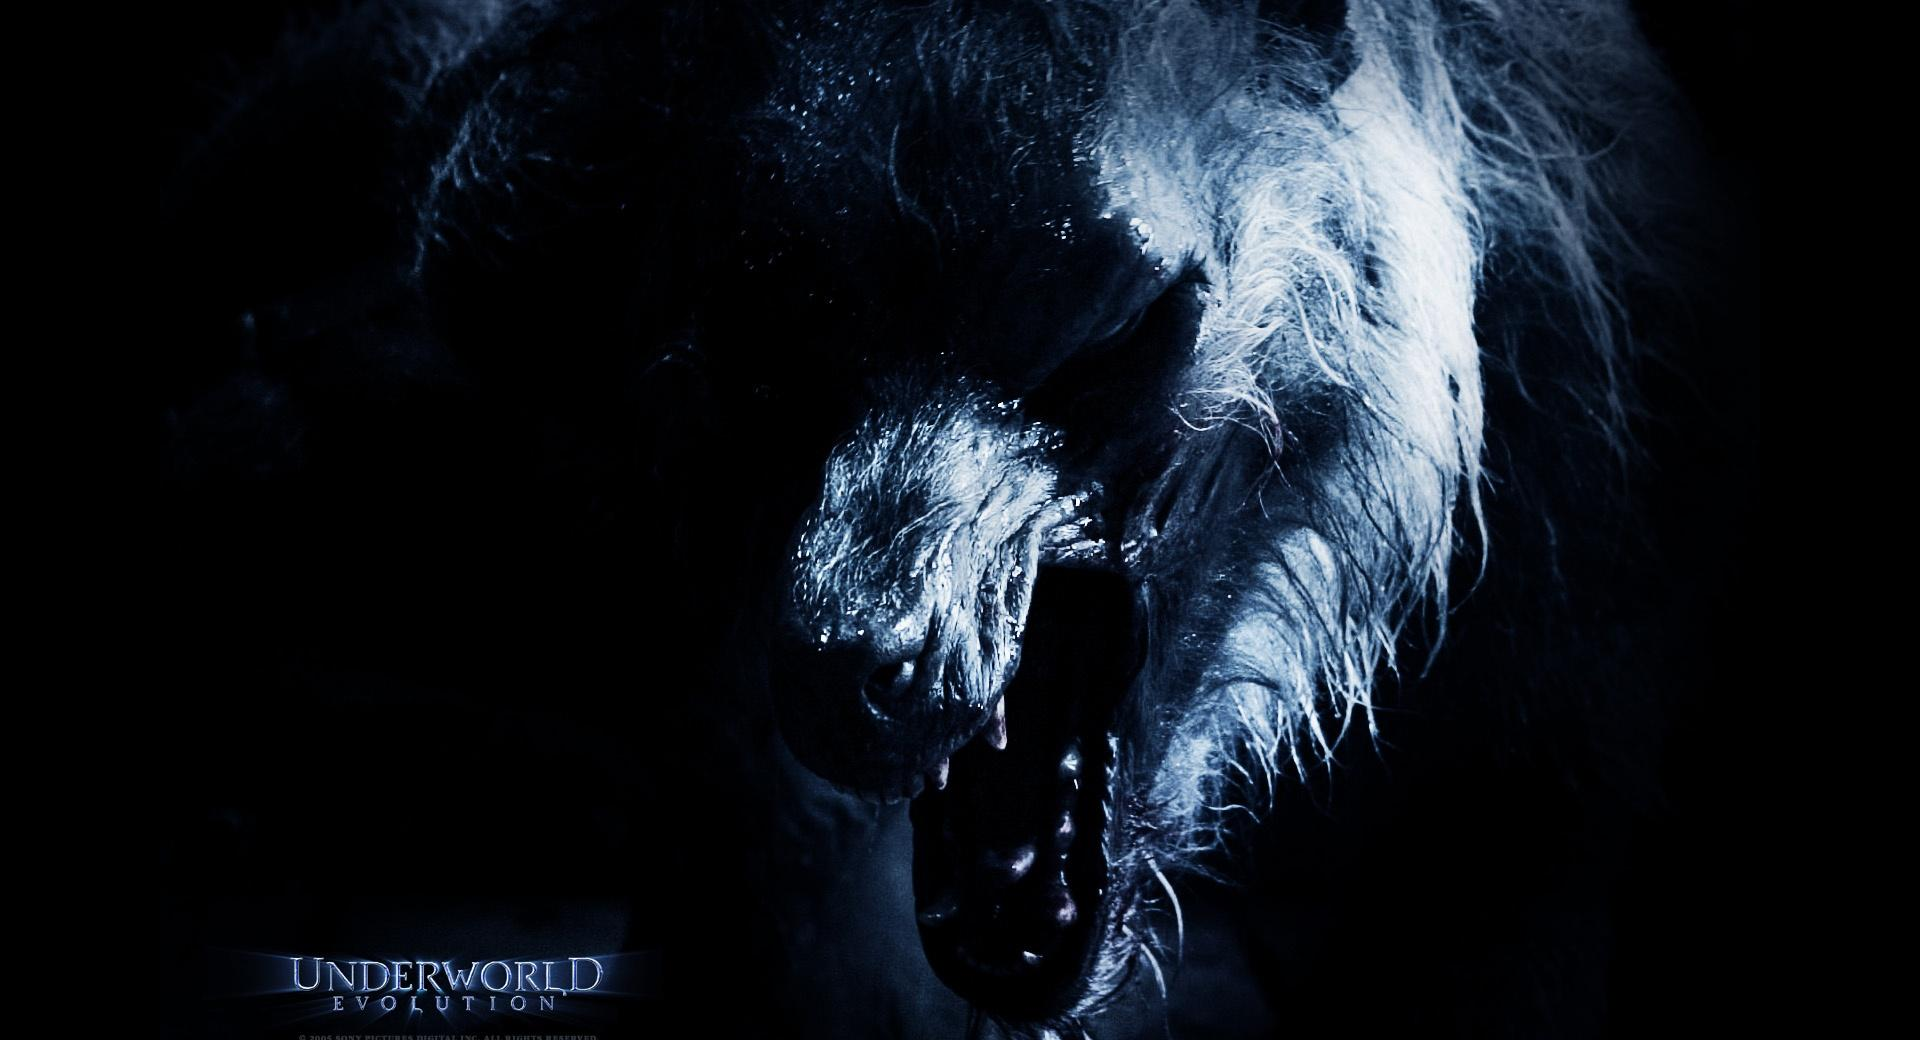 Underworld Scary wallpapers HD quality